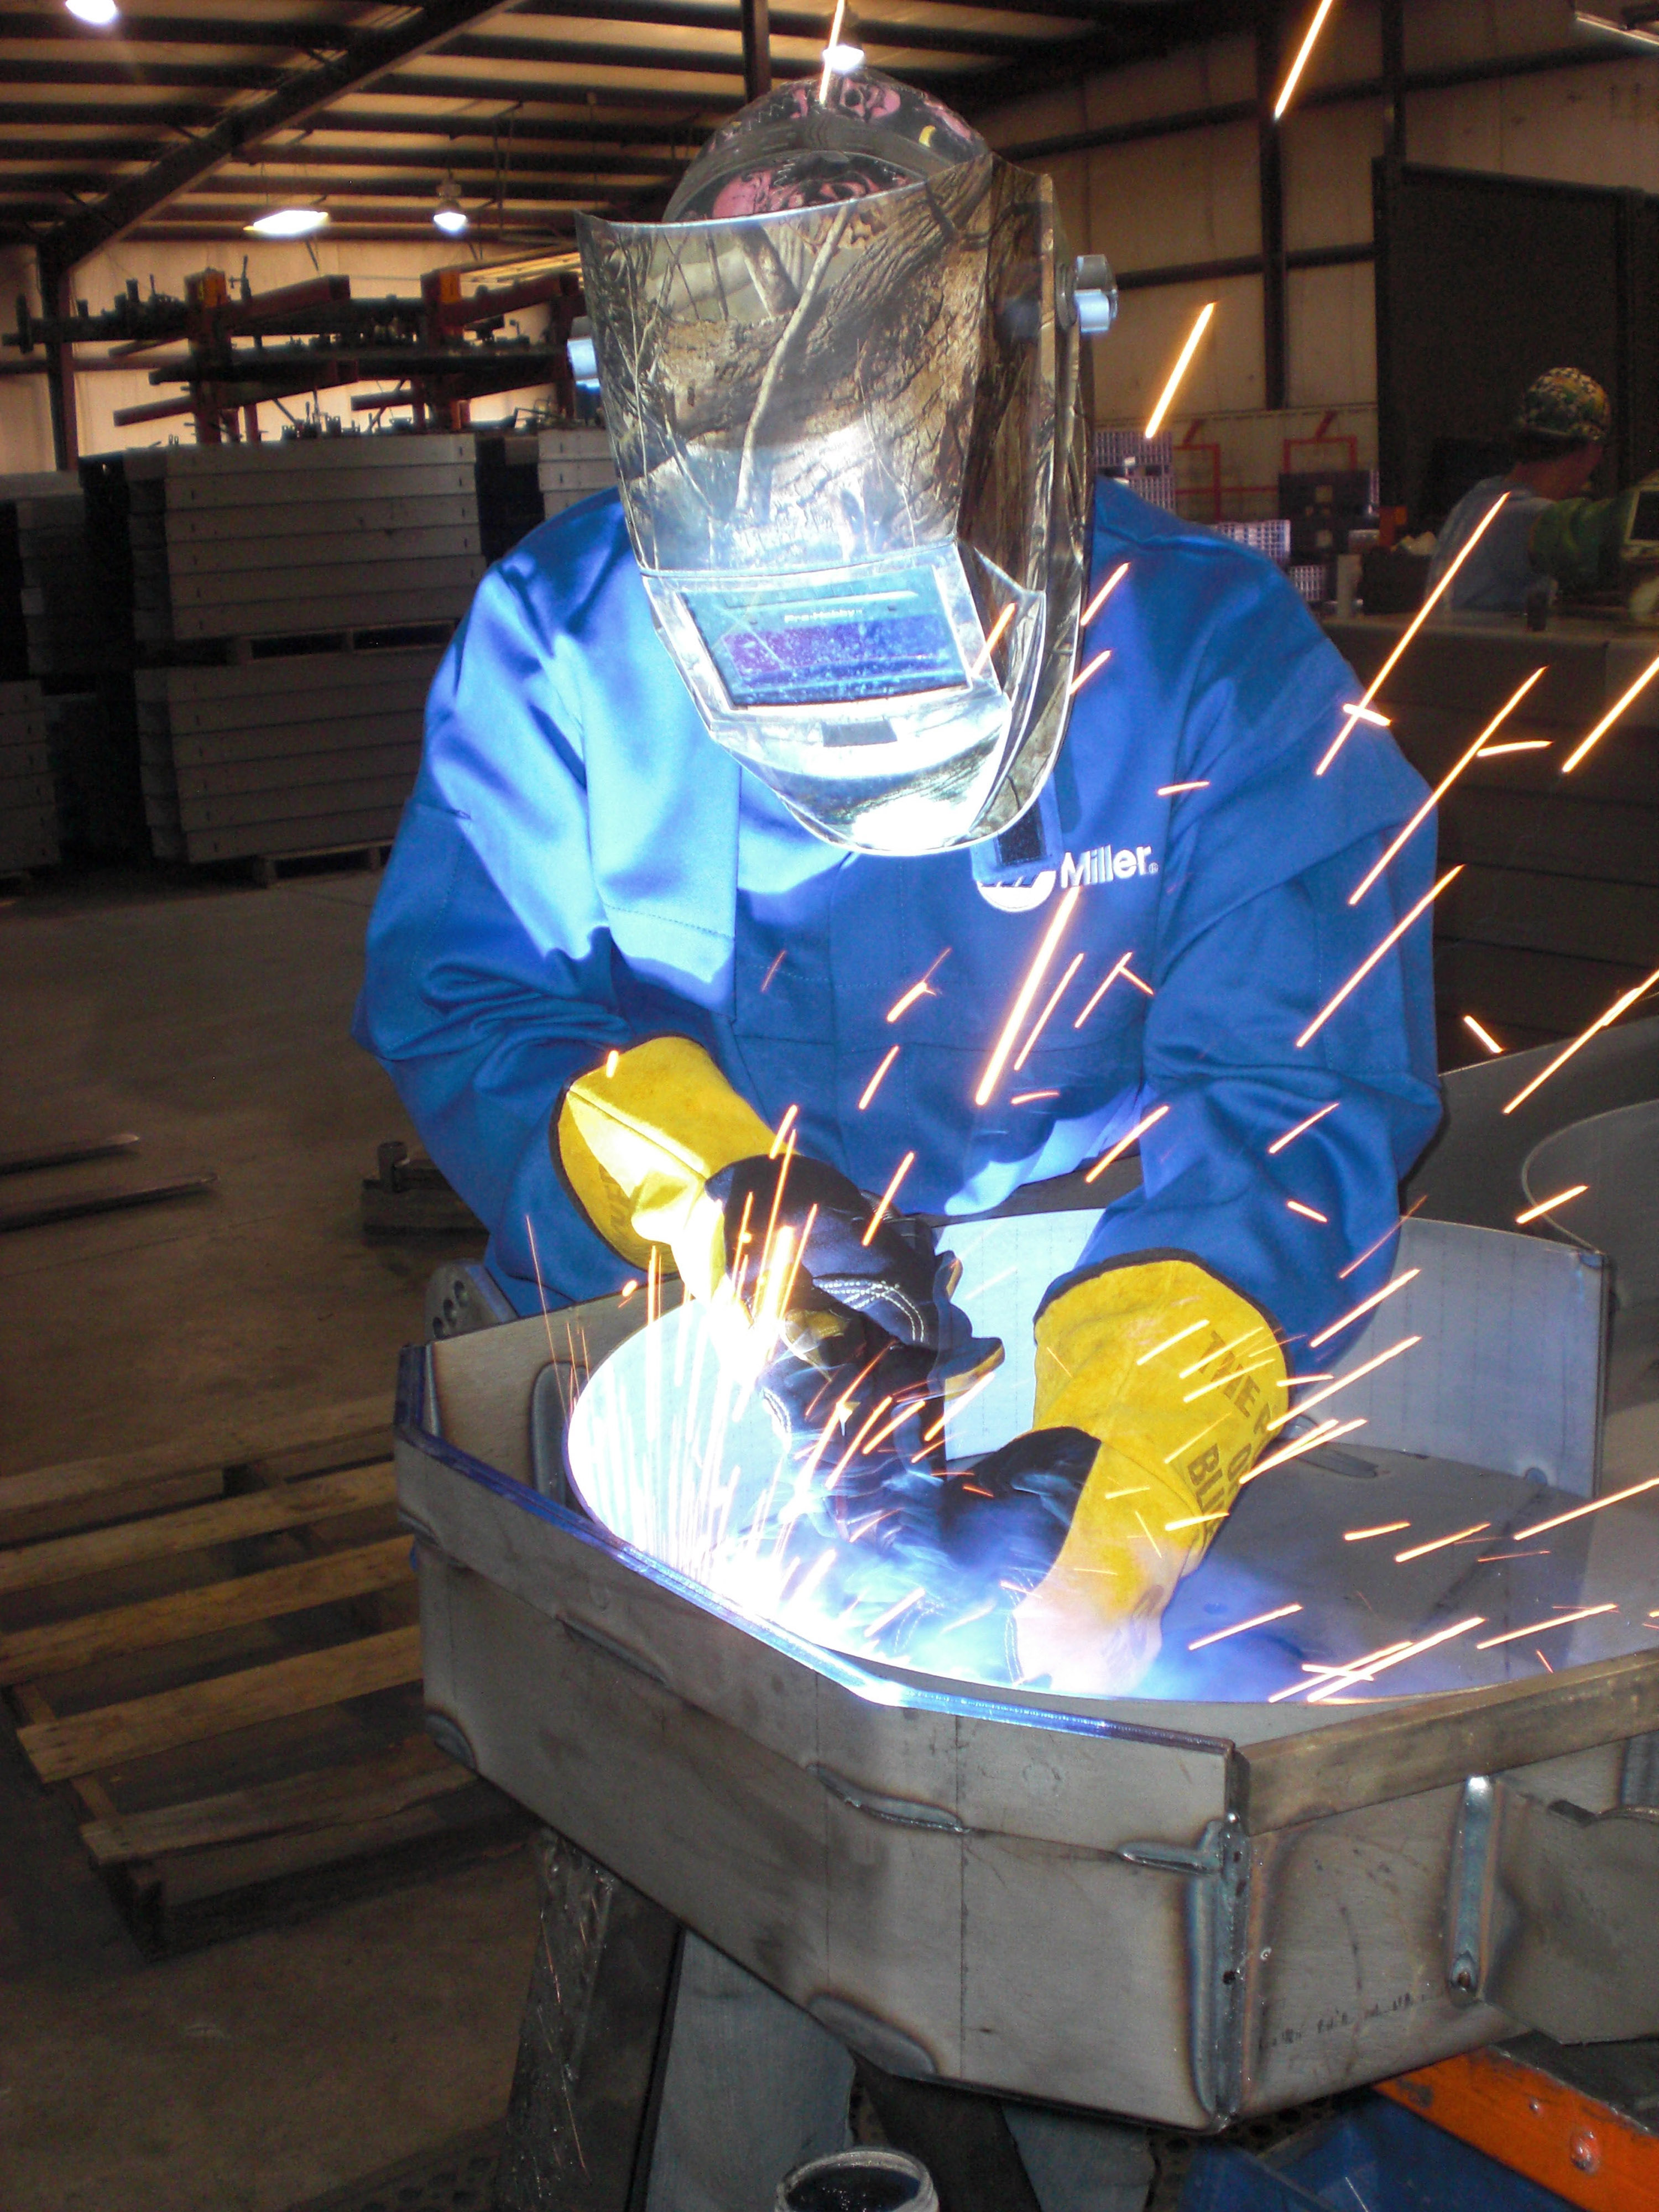 There is more to teaching a novice welder than just showing him or her how to set the power source or hold the gun or torch at the correct angle. It is important to instill good habits early on in the training process and provide the knowledge to address everything from maintenance to materials.(Click on photo to enlarge it)